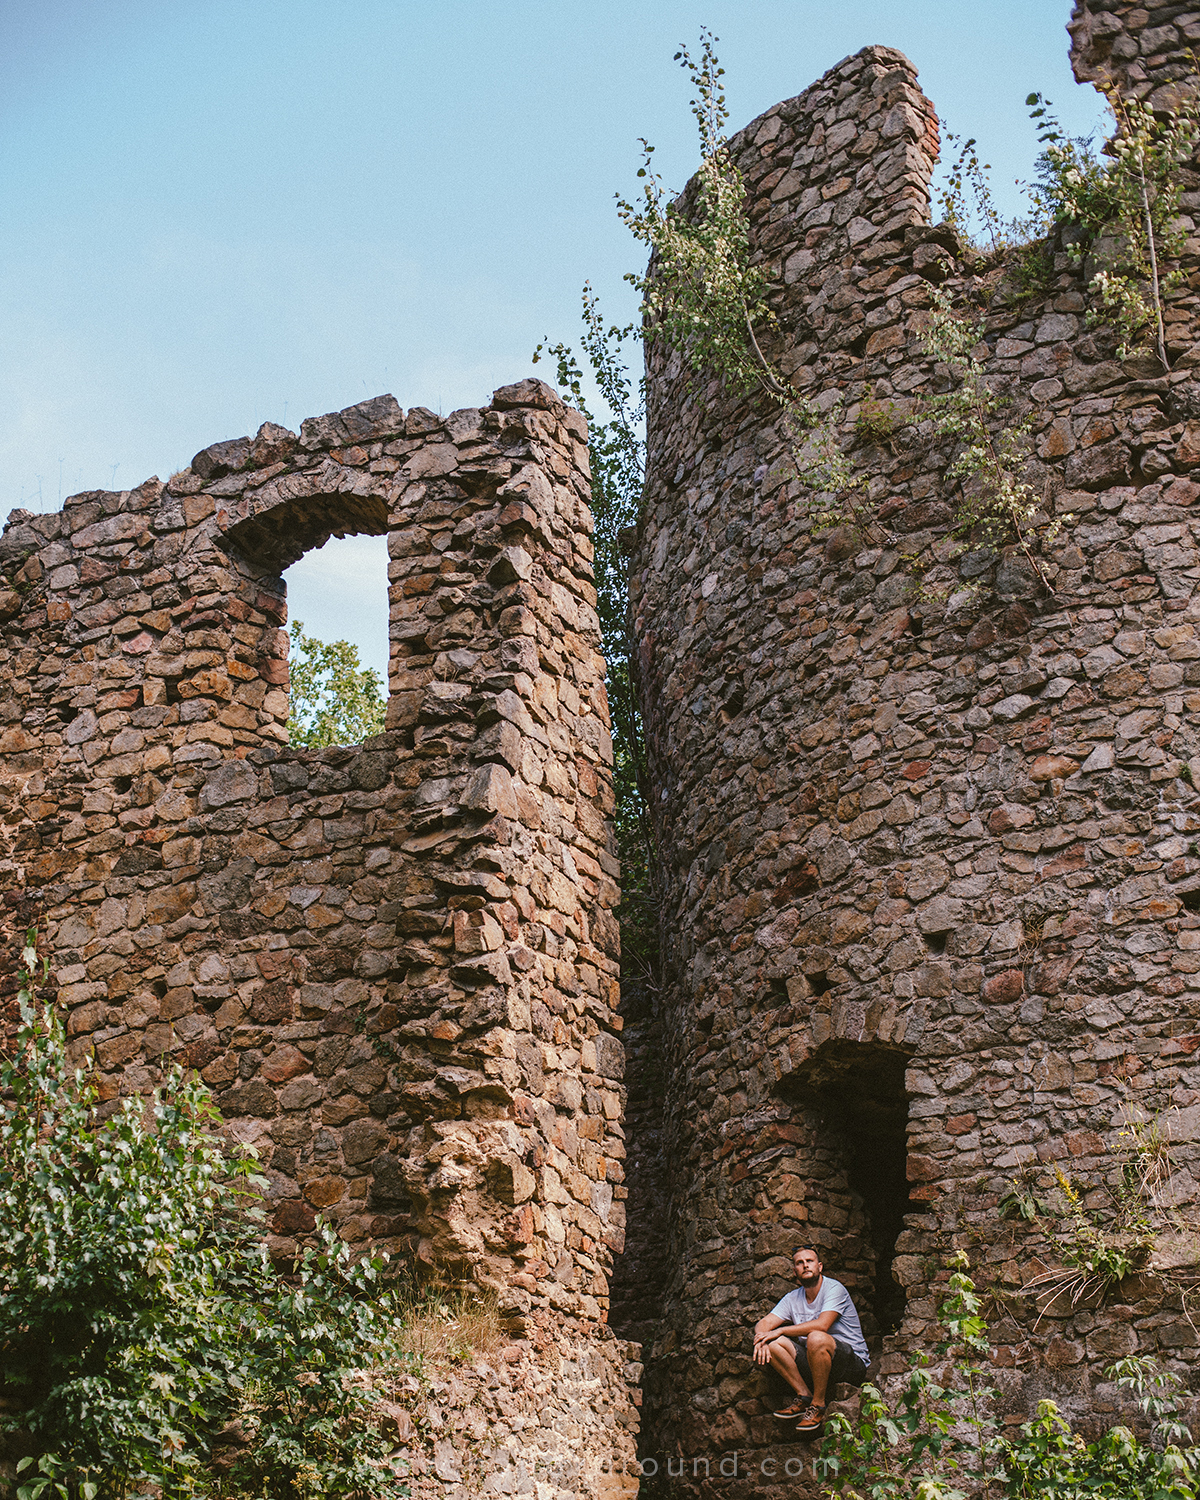 Zach looking at the ruins of the Cisy Castle